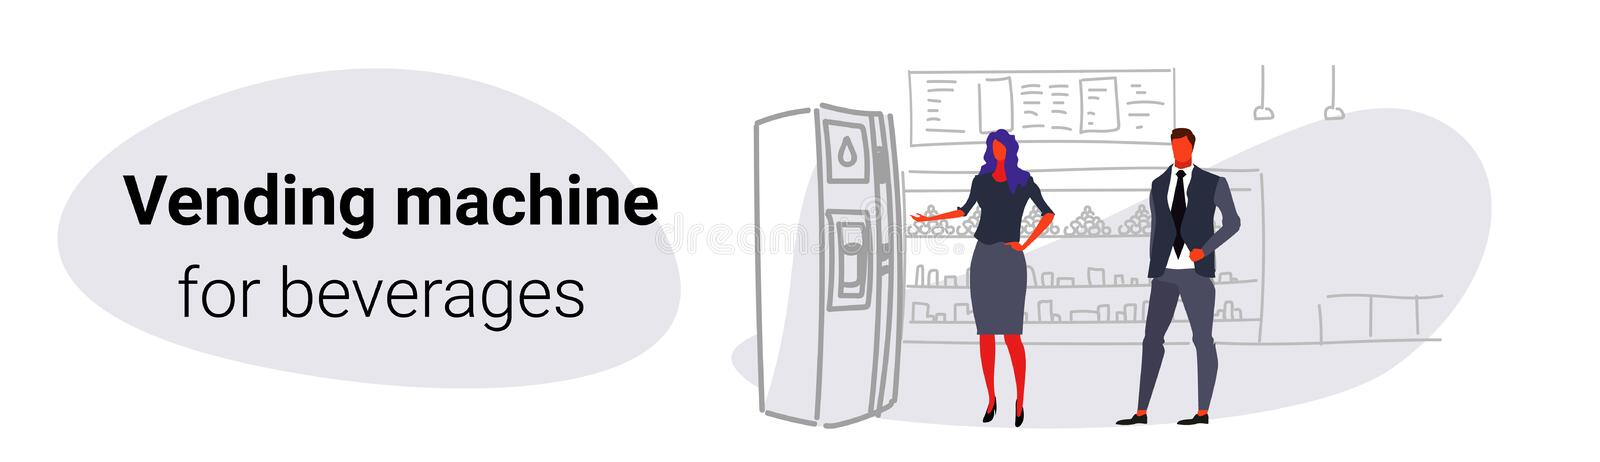 Businesspeople taking beverages from water dispenser man woman using vending machine big grocery shop modern super royalty free illustration